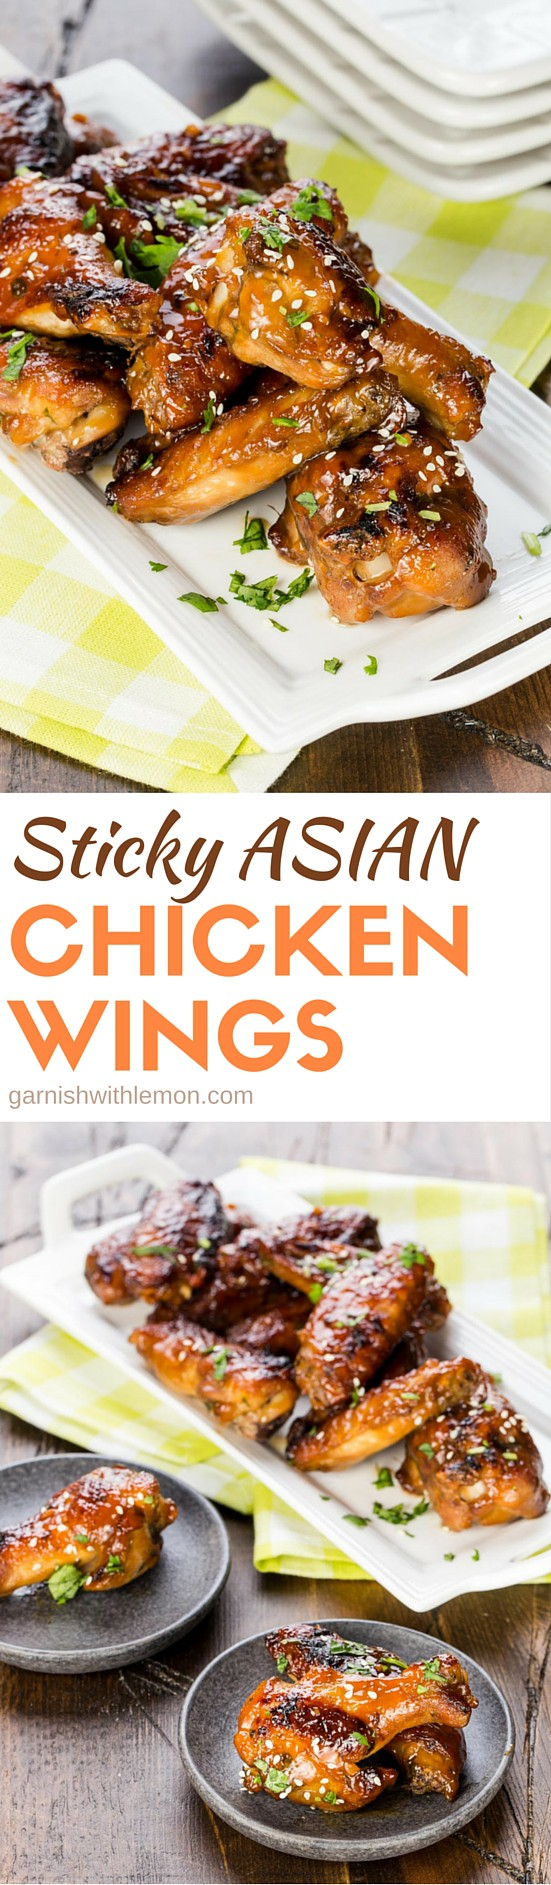 Sticky, sweet and full of flavor, these Sticky Asian Chicken Wings are guaranteed to be a hit with everyone!